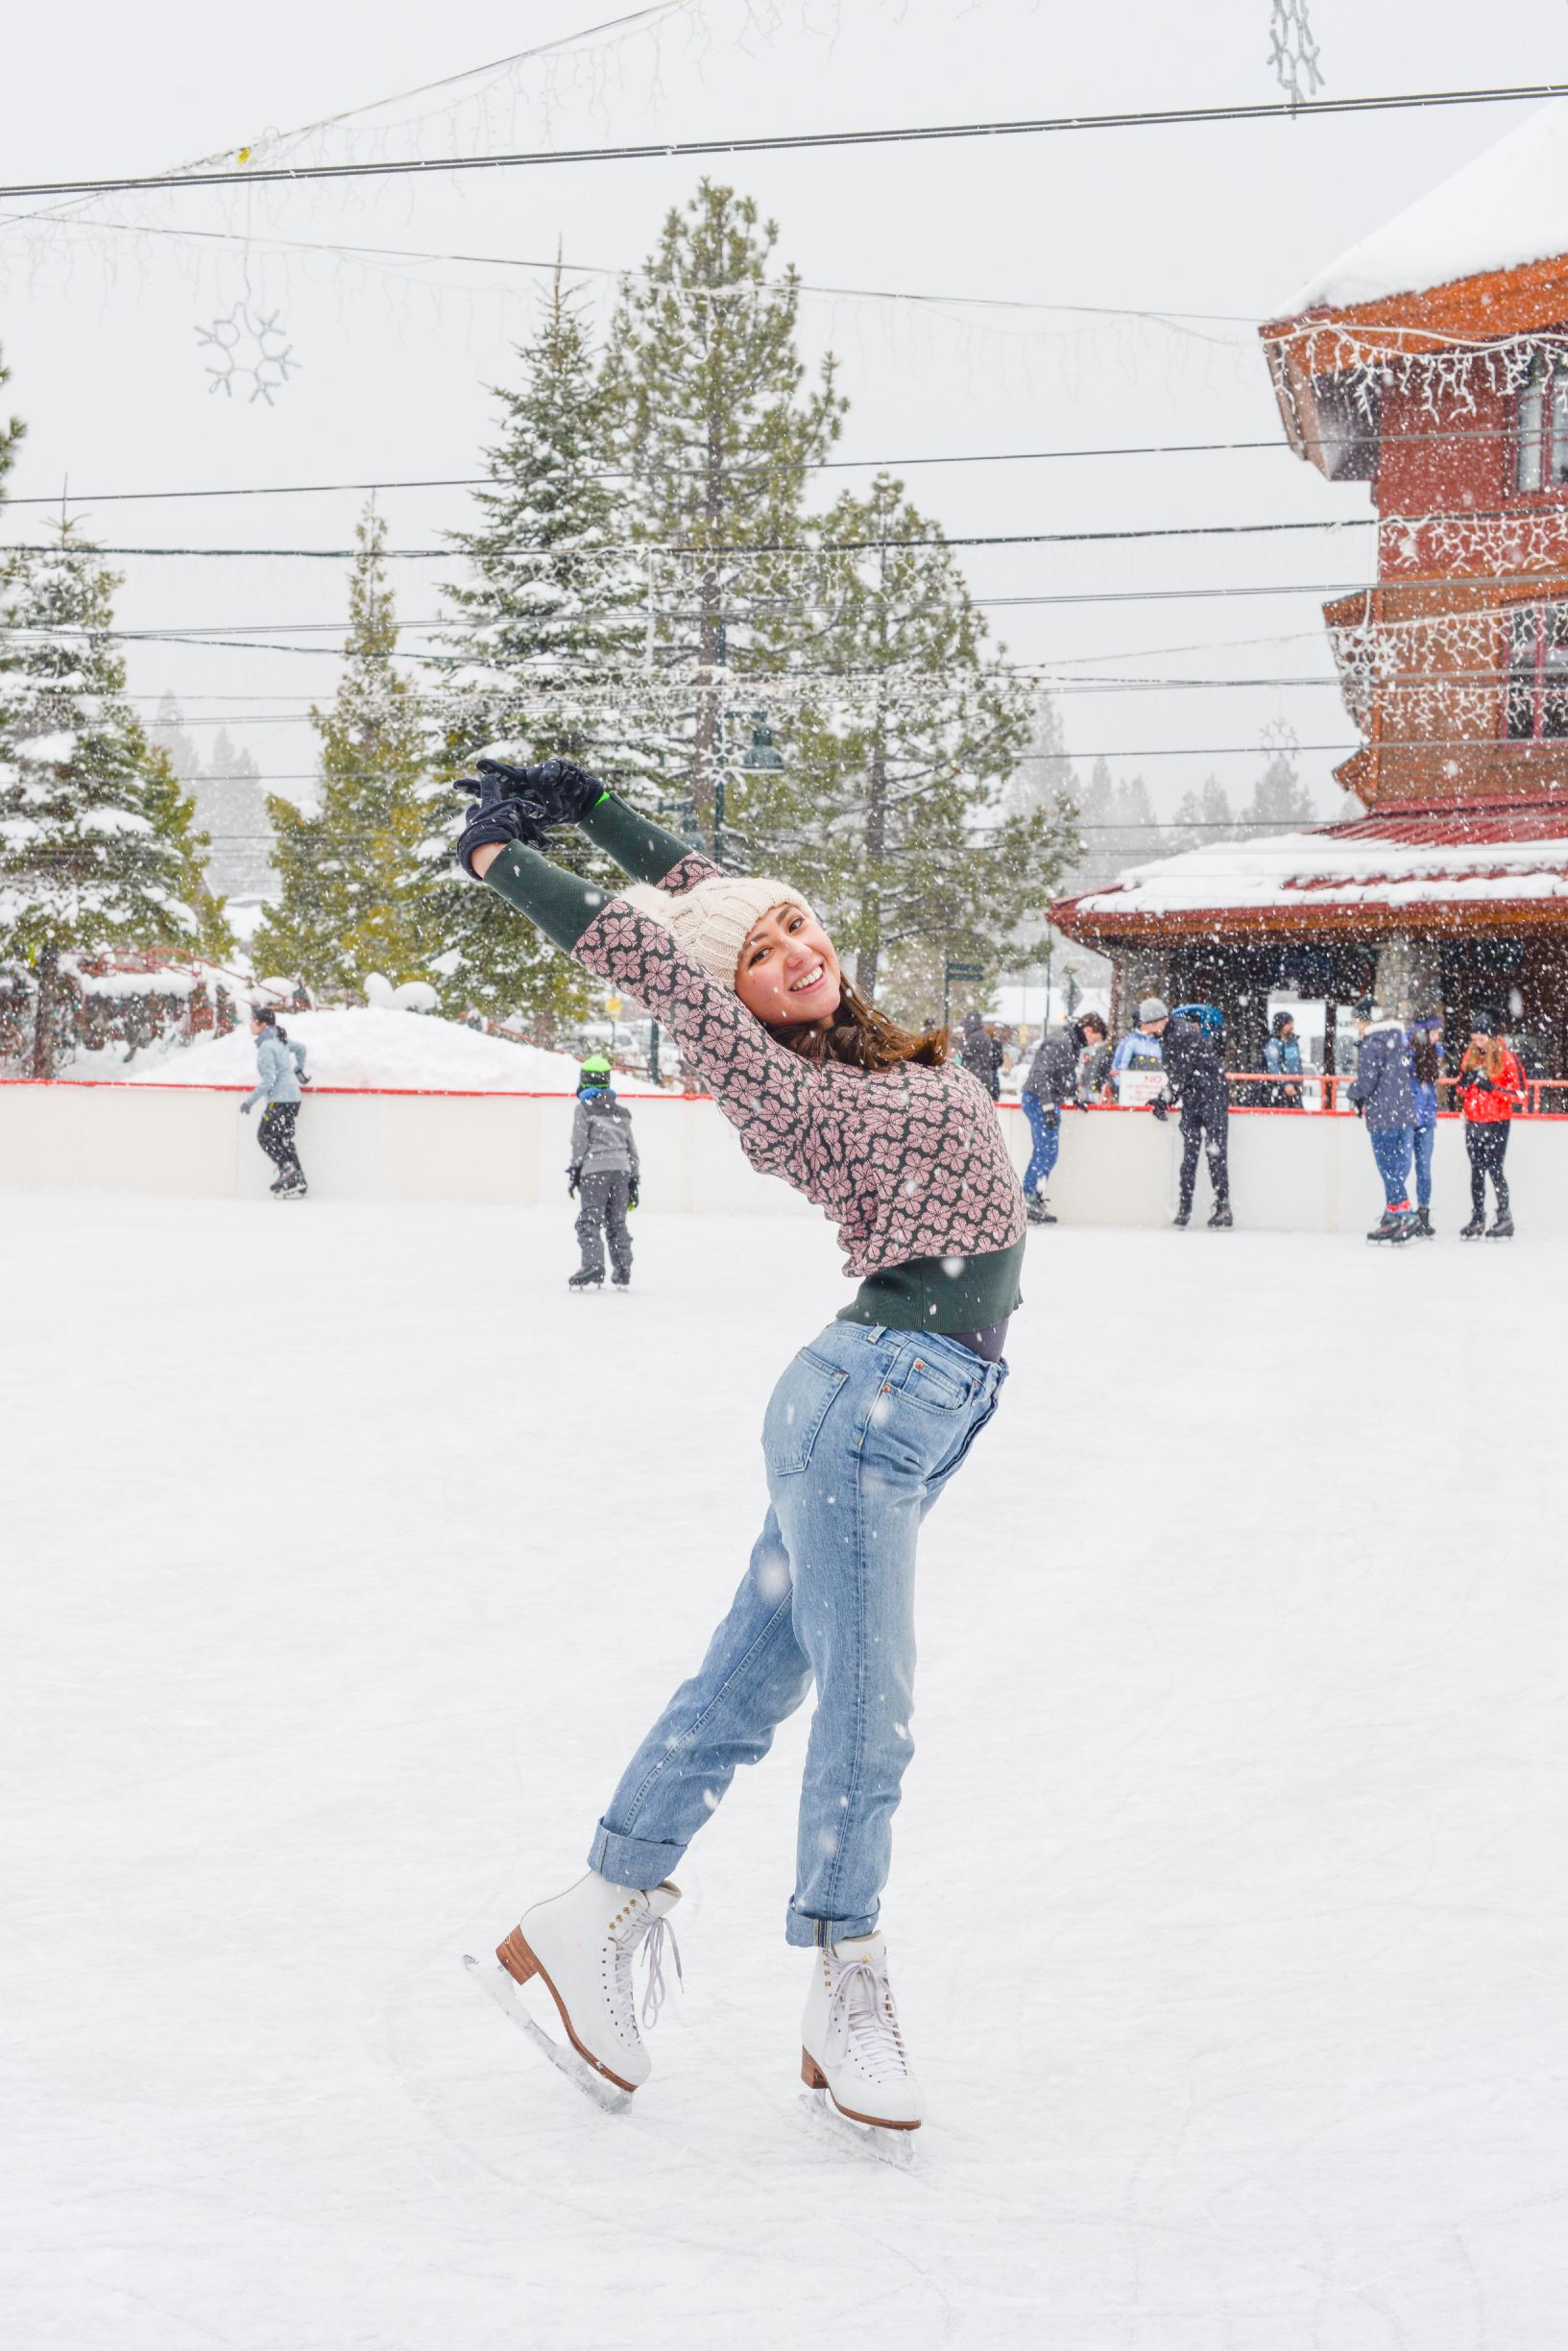 Ice skating is the best outdoors! I love feeling the cold air rush through my face!   #iceskate #figureskating #figureskater #figureskatingdress #figures #laketahoe #winter #wintersport #iceskate #jackson